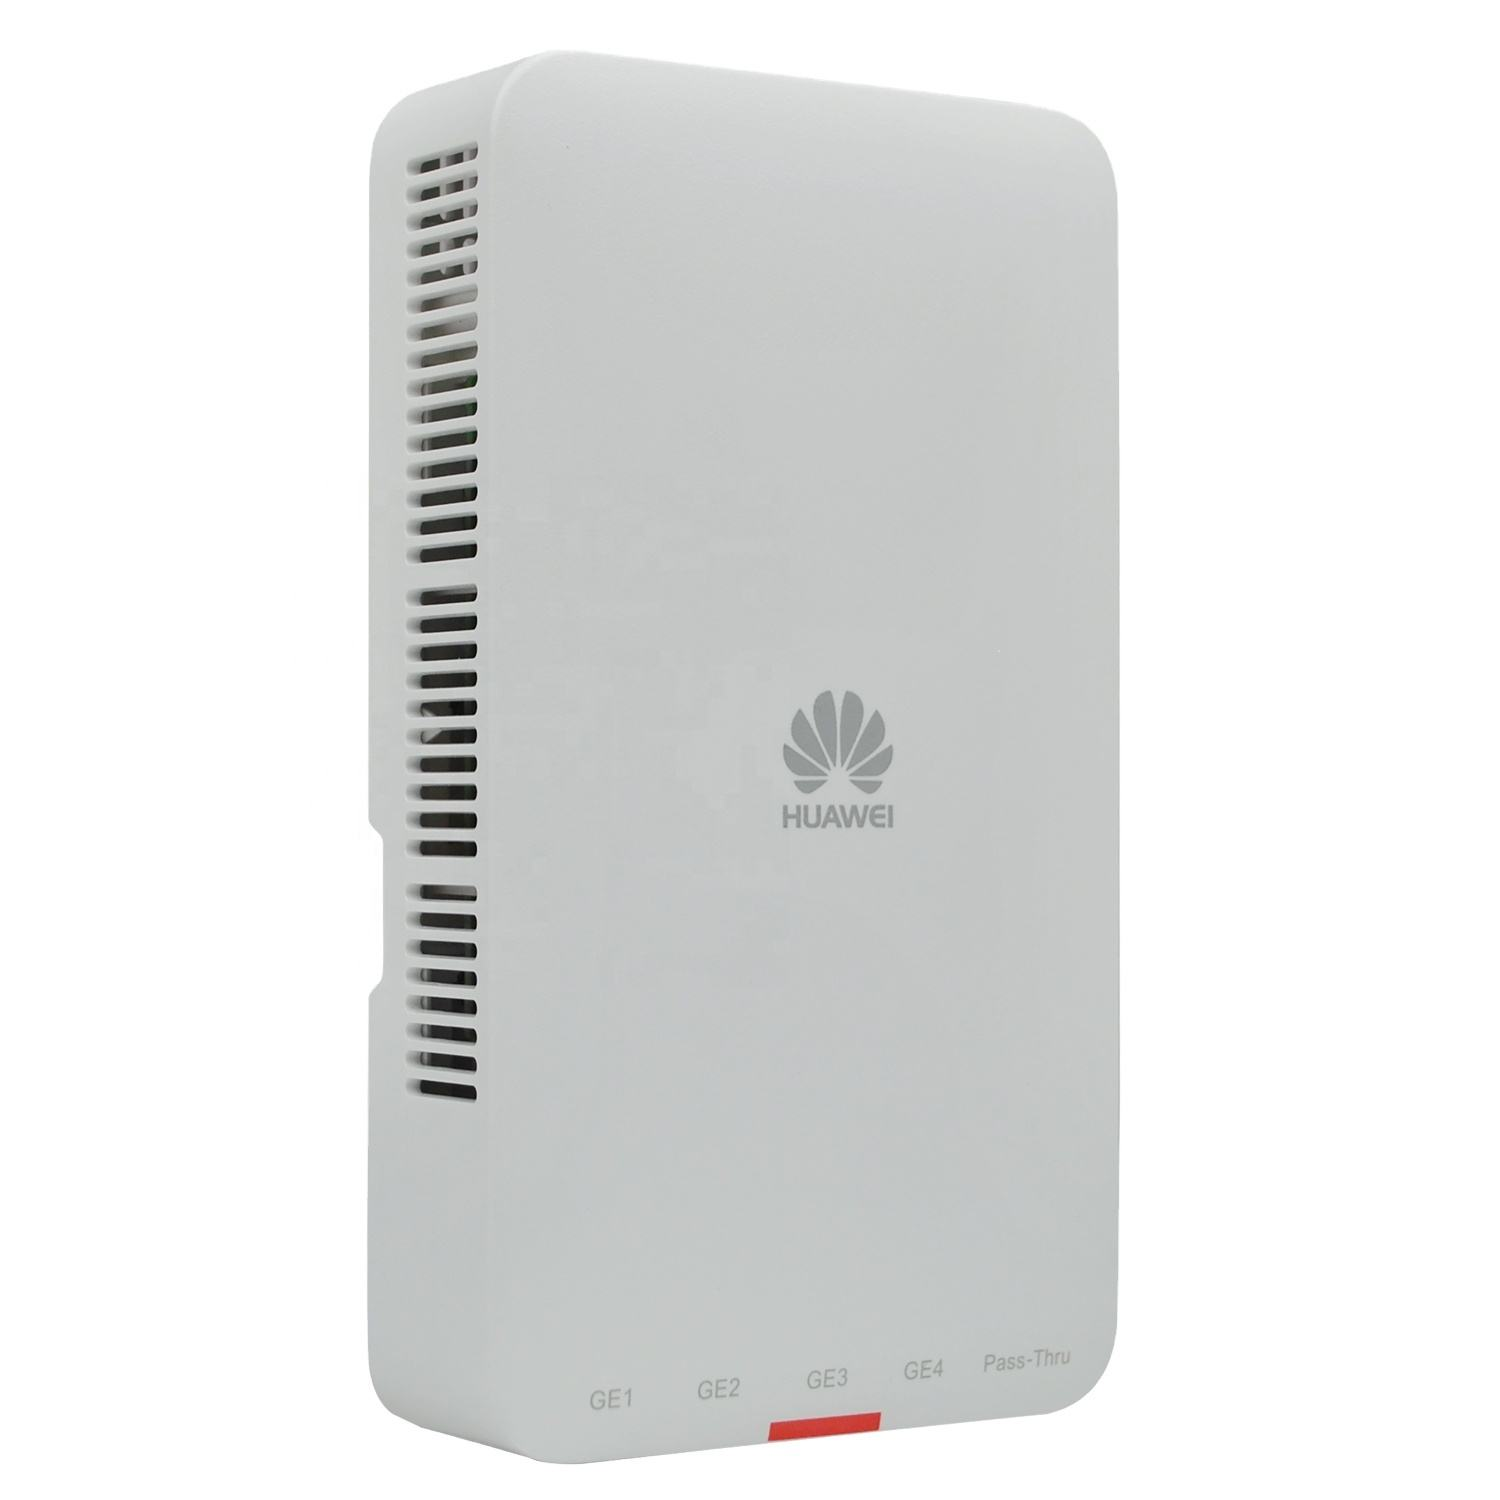 Huawei gigabit 802,11 ac Welle 2 wand montage remote unit access point R251D mit gebaut-in smart antenne